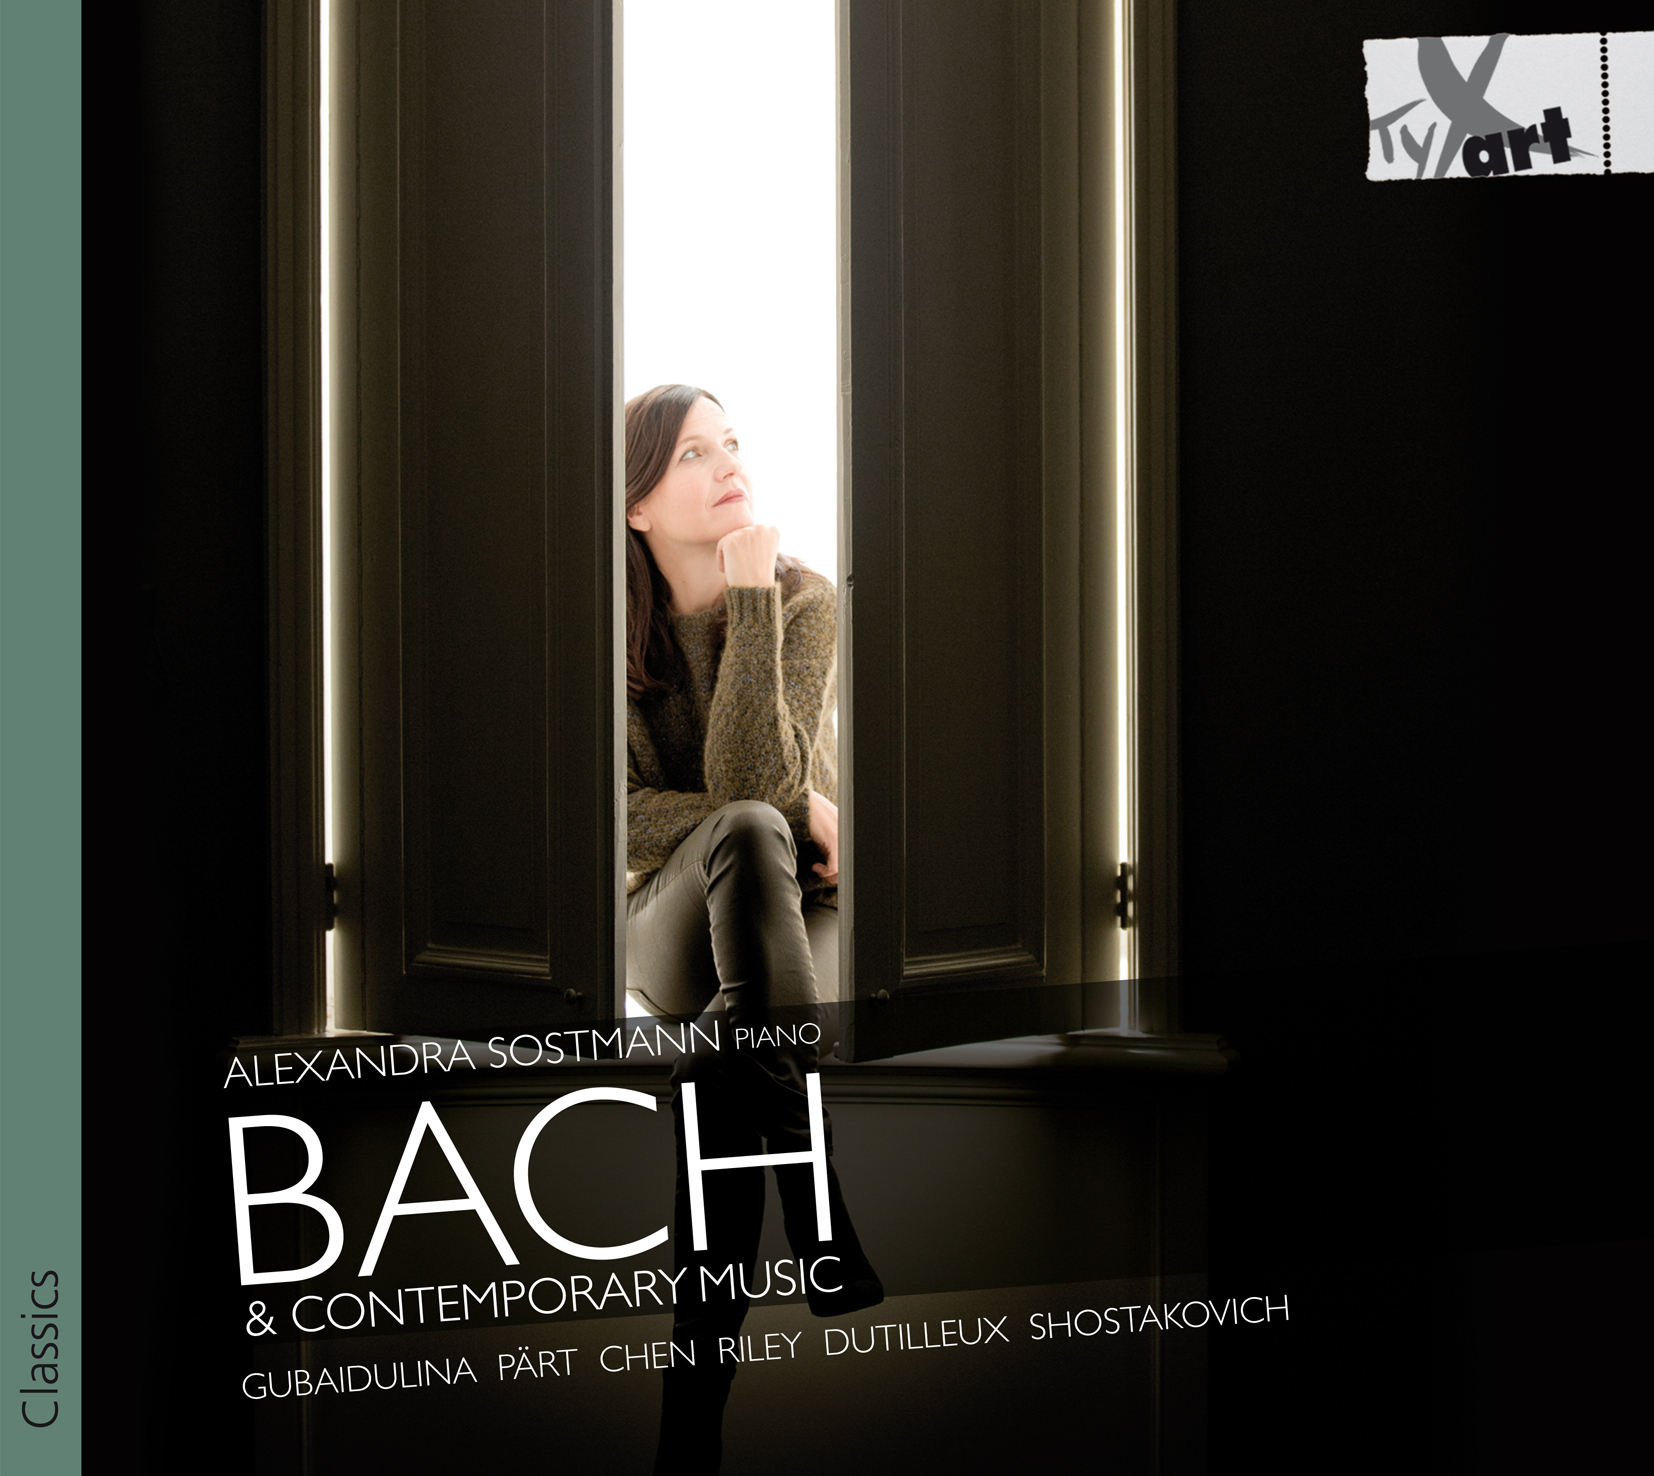 BACH & CONTEMPORARY MUSIC - Alexandra Sostmann, Piano